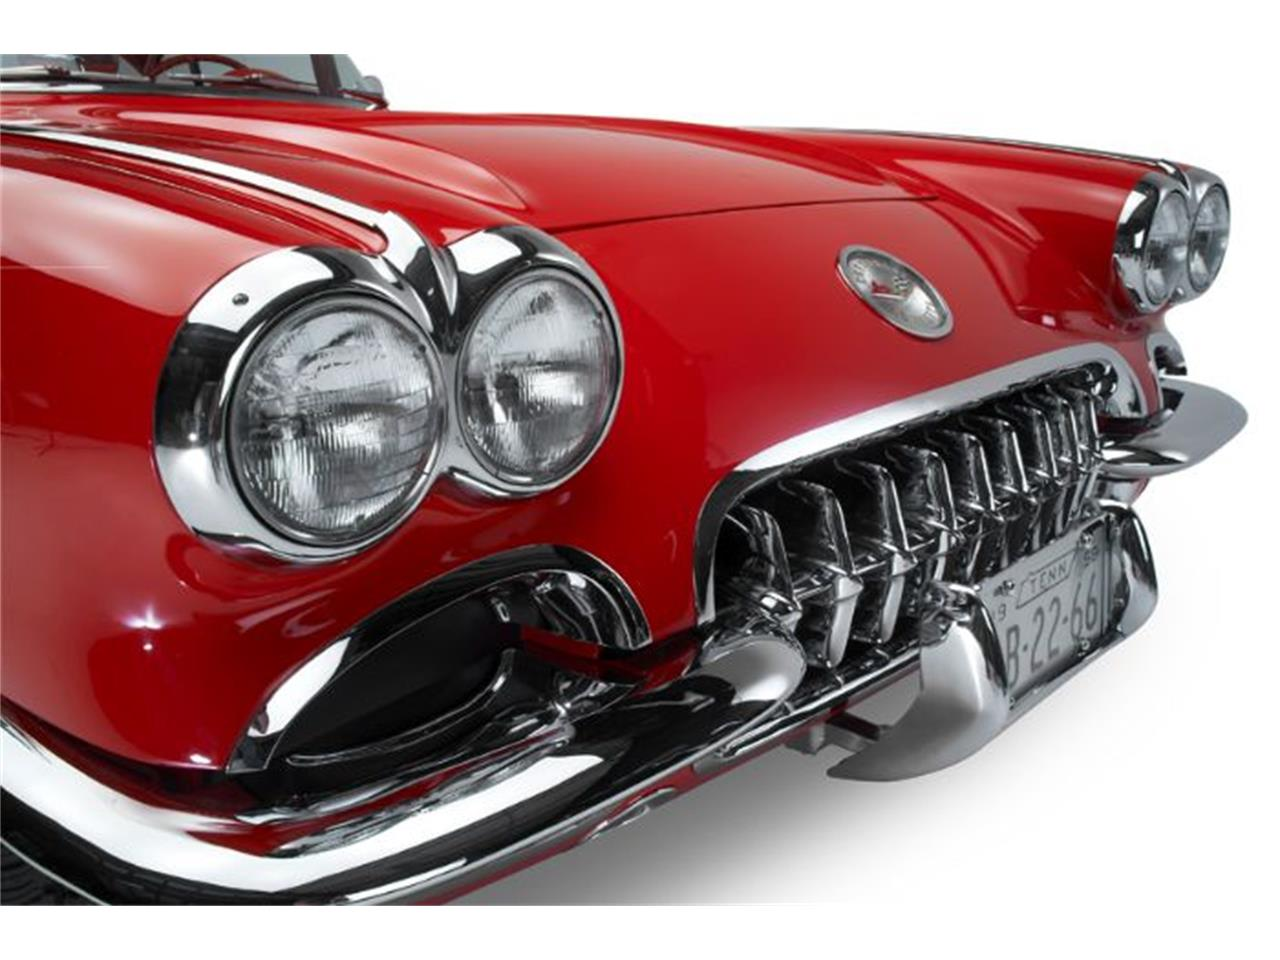 Large Picture of '58 Chevrolet Corvette located in Cadillac Michigan - $325,000.00 - KCRC